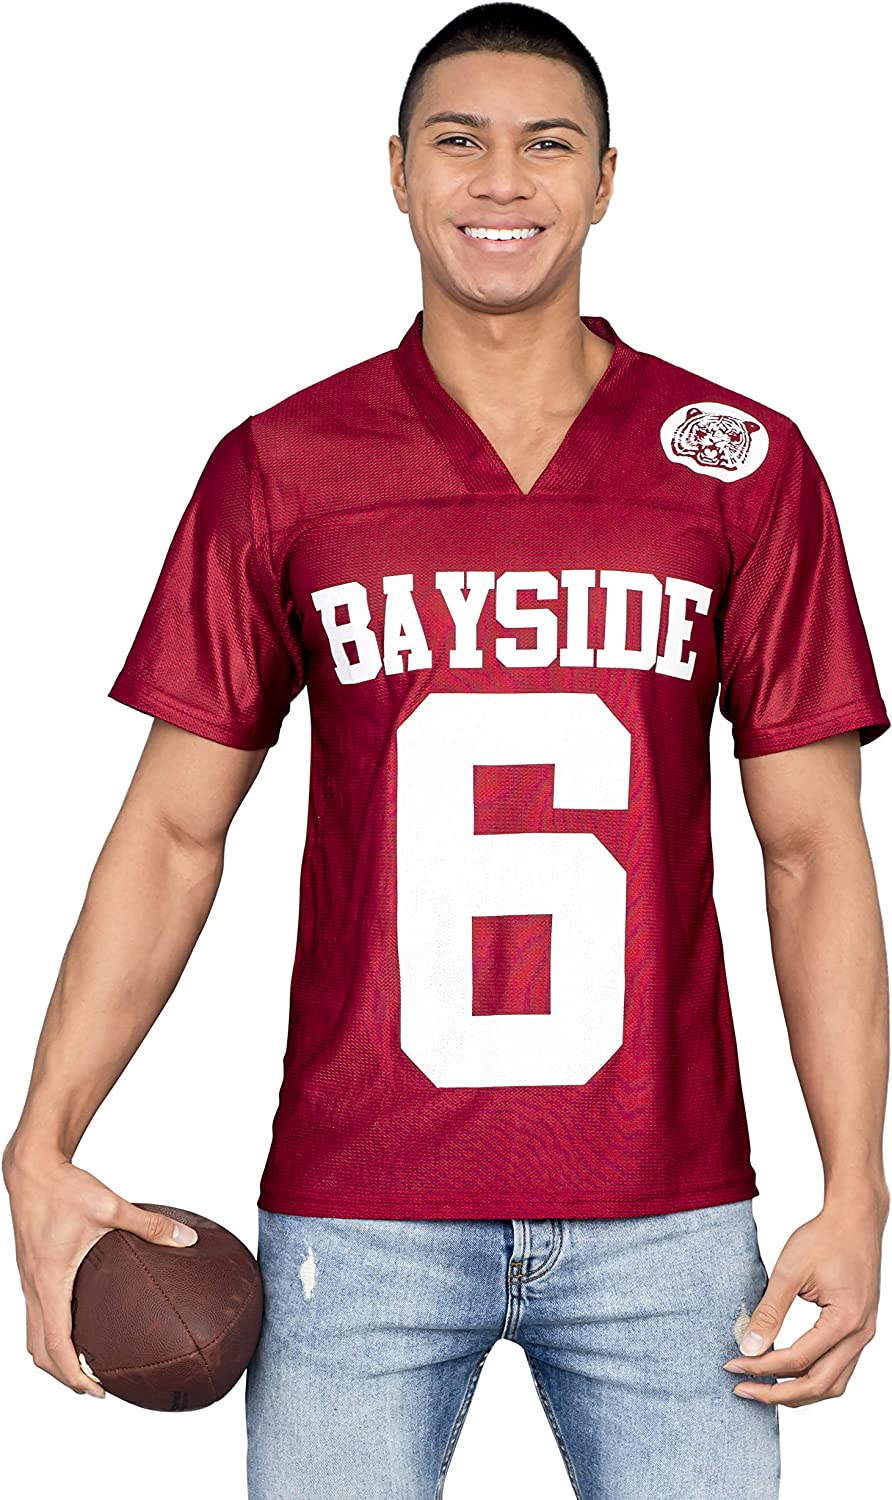 A.C Slater #6 Bayside Football Jersey Saved By The Bell AC Costume Uniform TV